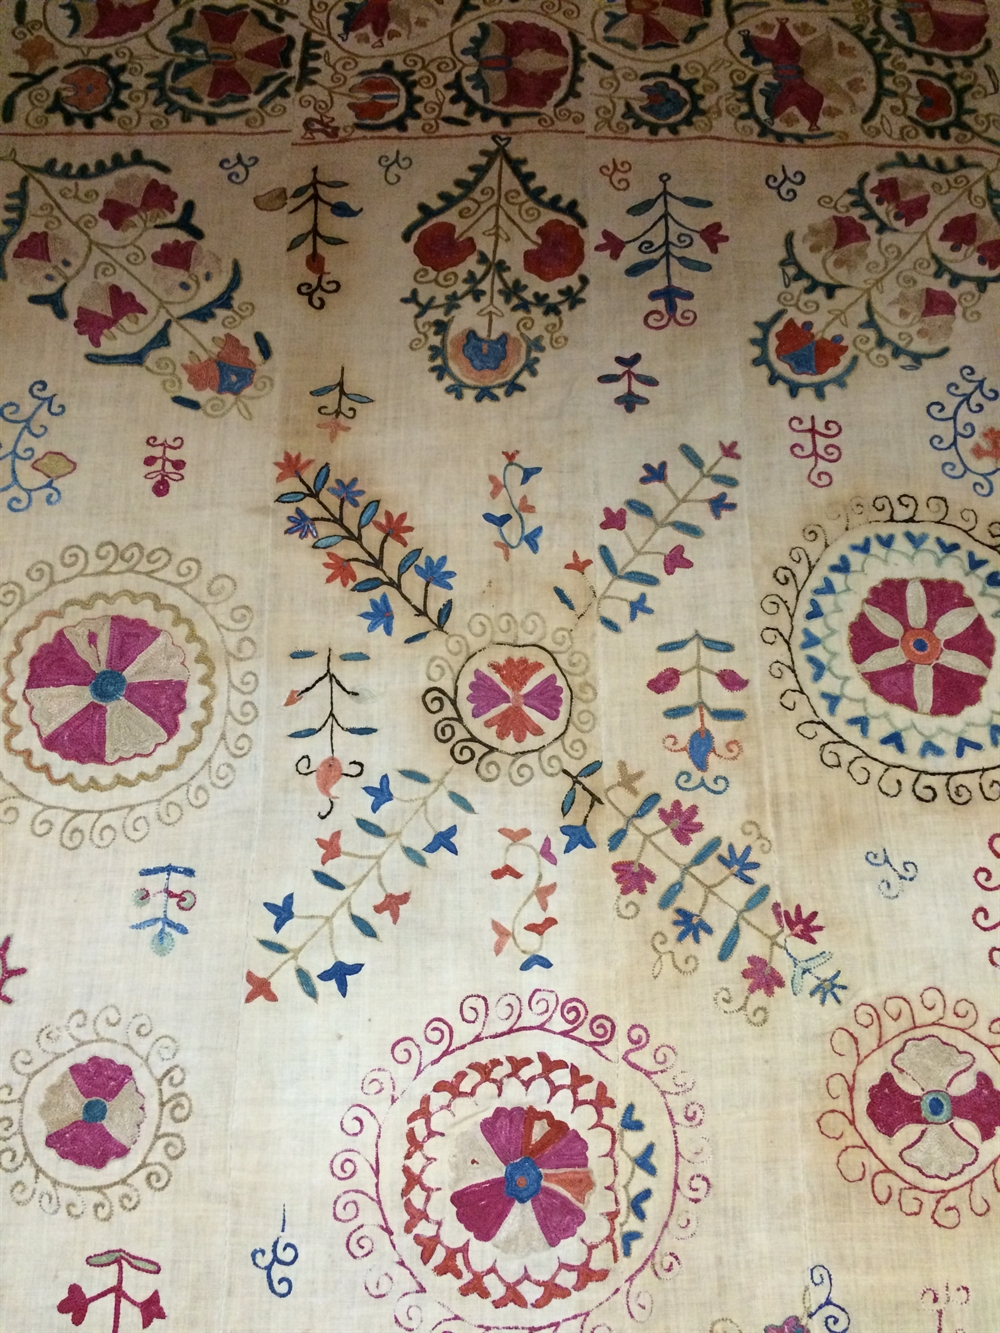 22 suzani_embroidered_textiles_ethnic_style_boho_gypsy_interior_design_home_decor_asia_inspirations_styl_etniczny_kolorowe_wnetrze_forelements_blog